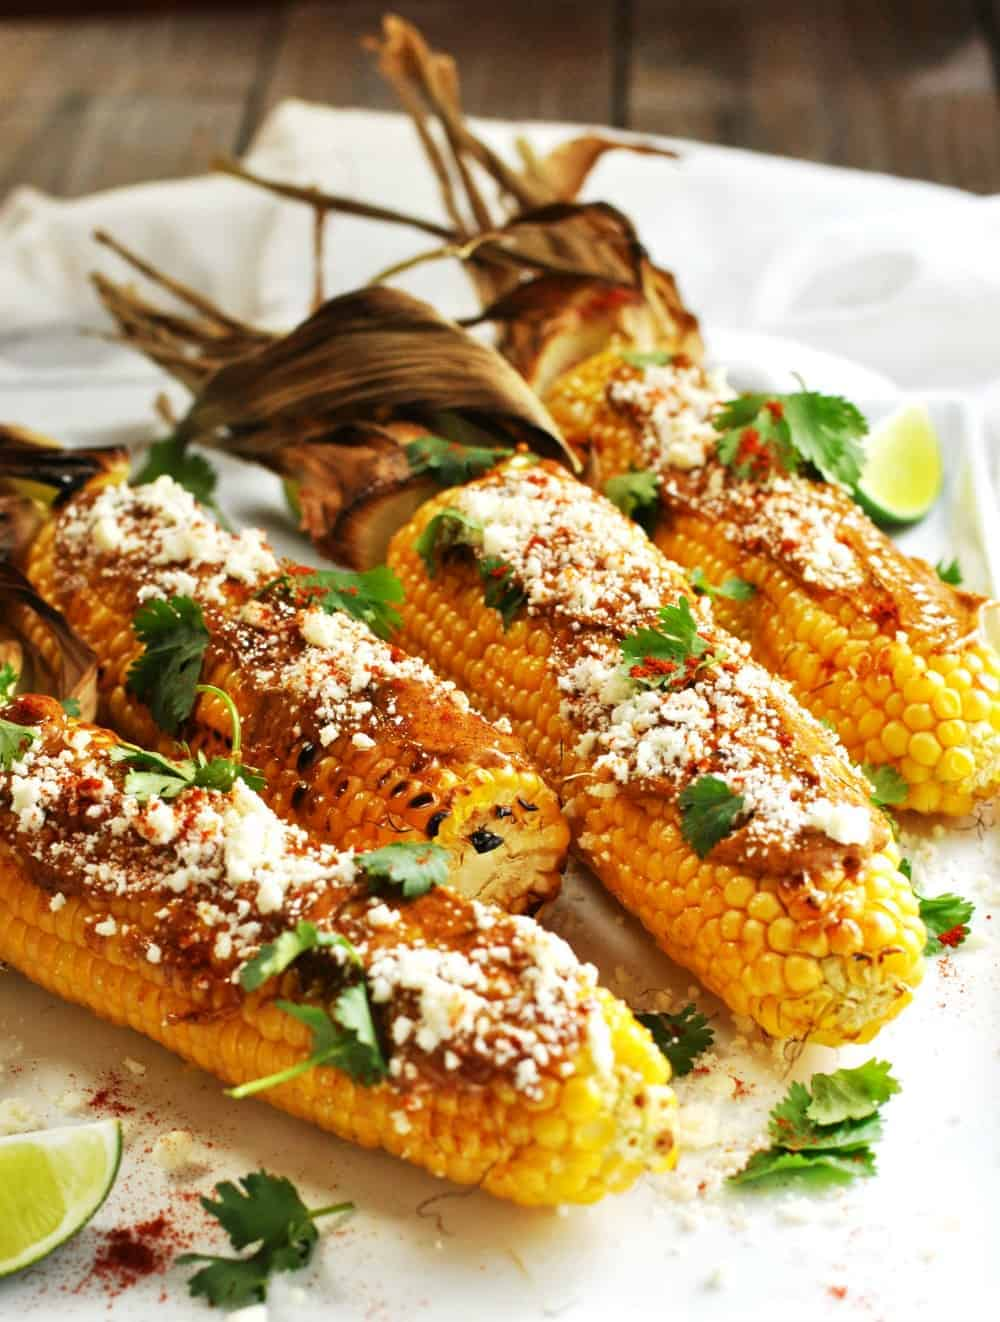 Mexican Street Corn Served on a White Platter